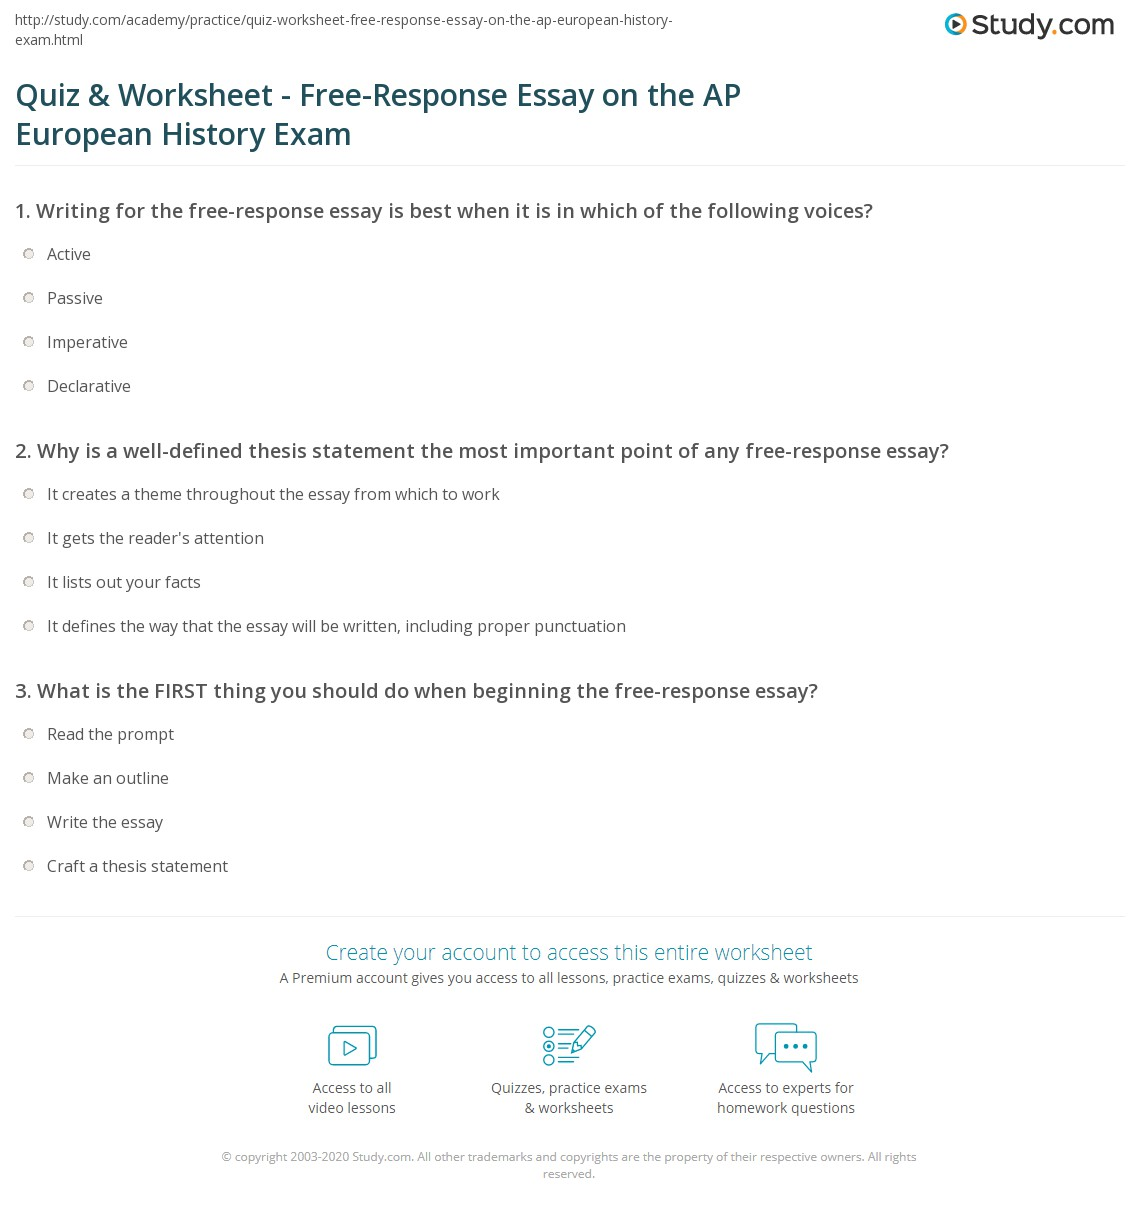 quiz  worksheet  freeresponse essay on the ap european history  why is a welldefined thesis statement the most important point of any freeresponse  essay